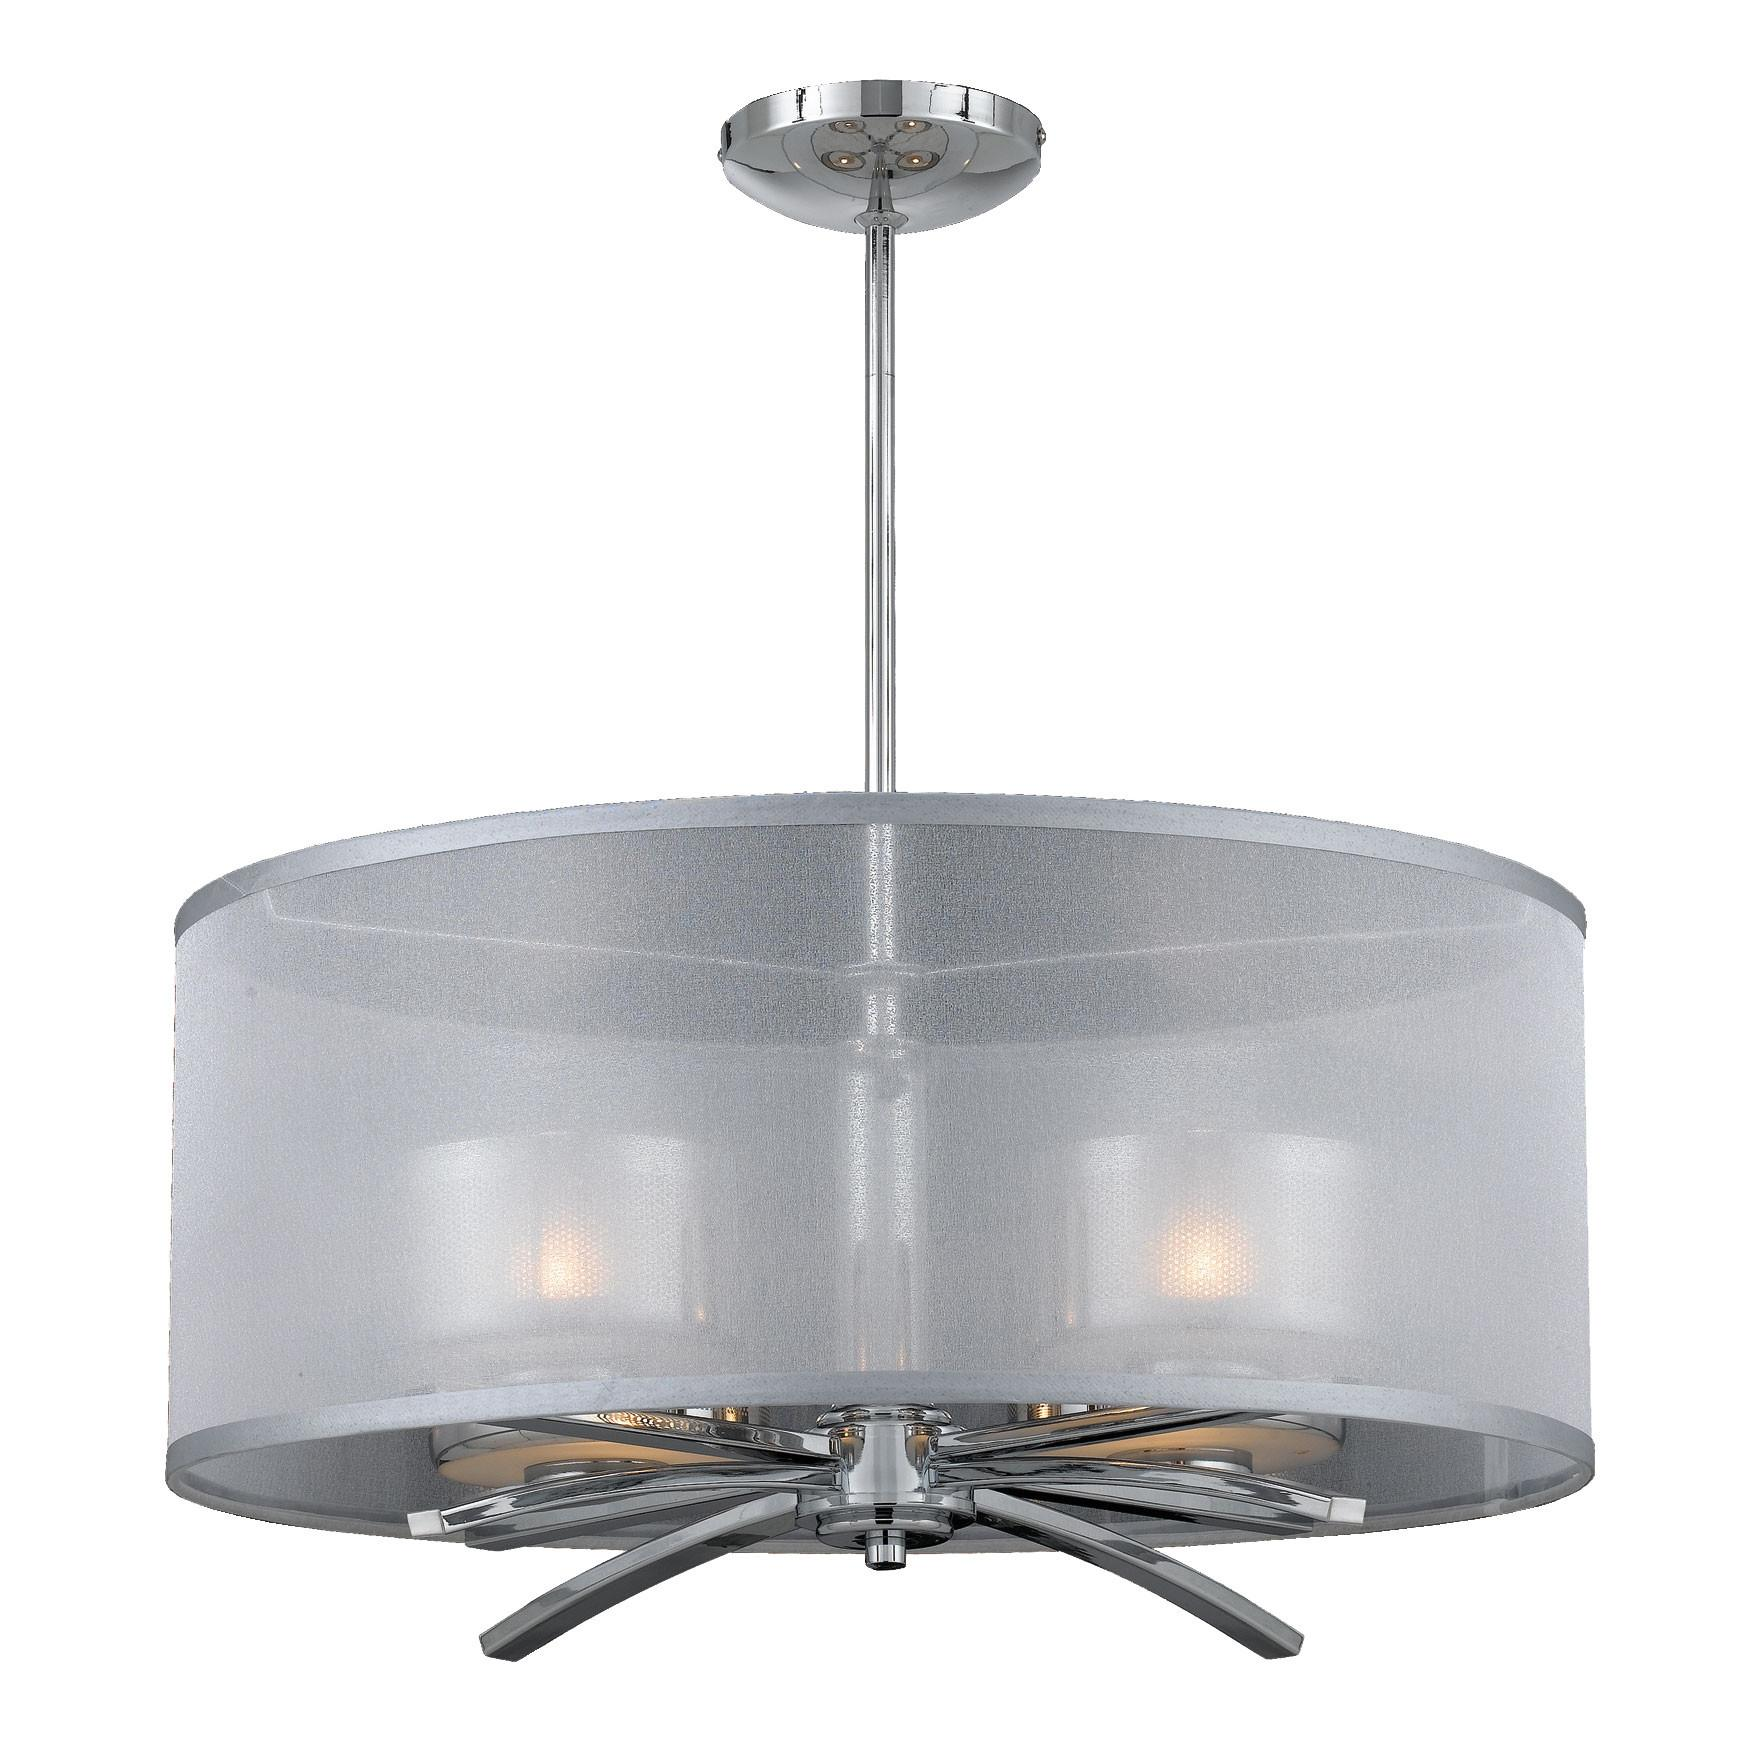 Lumenno Bodorlo Light Drum Pendant